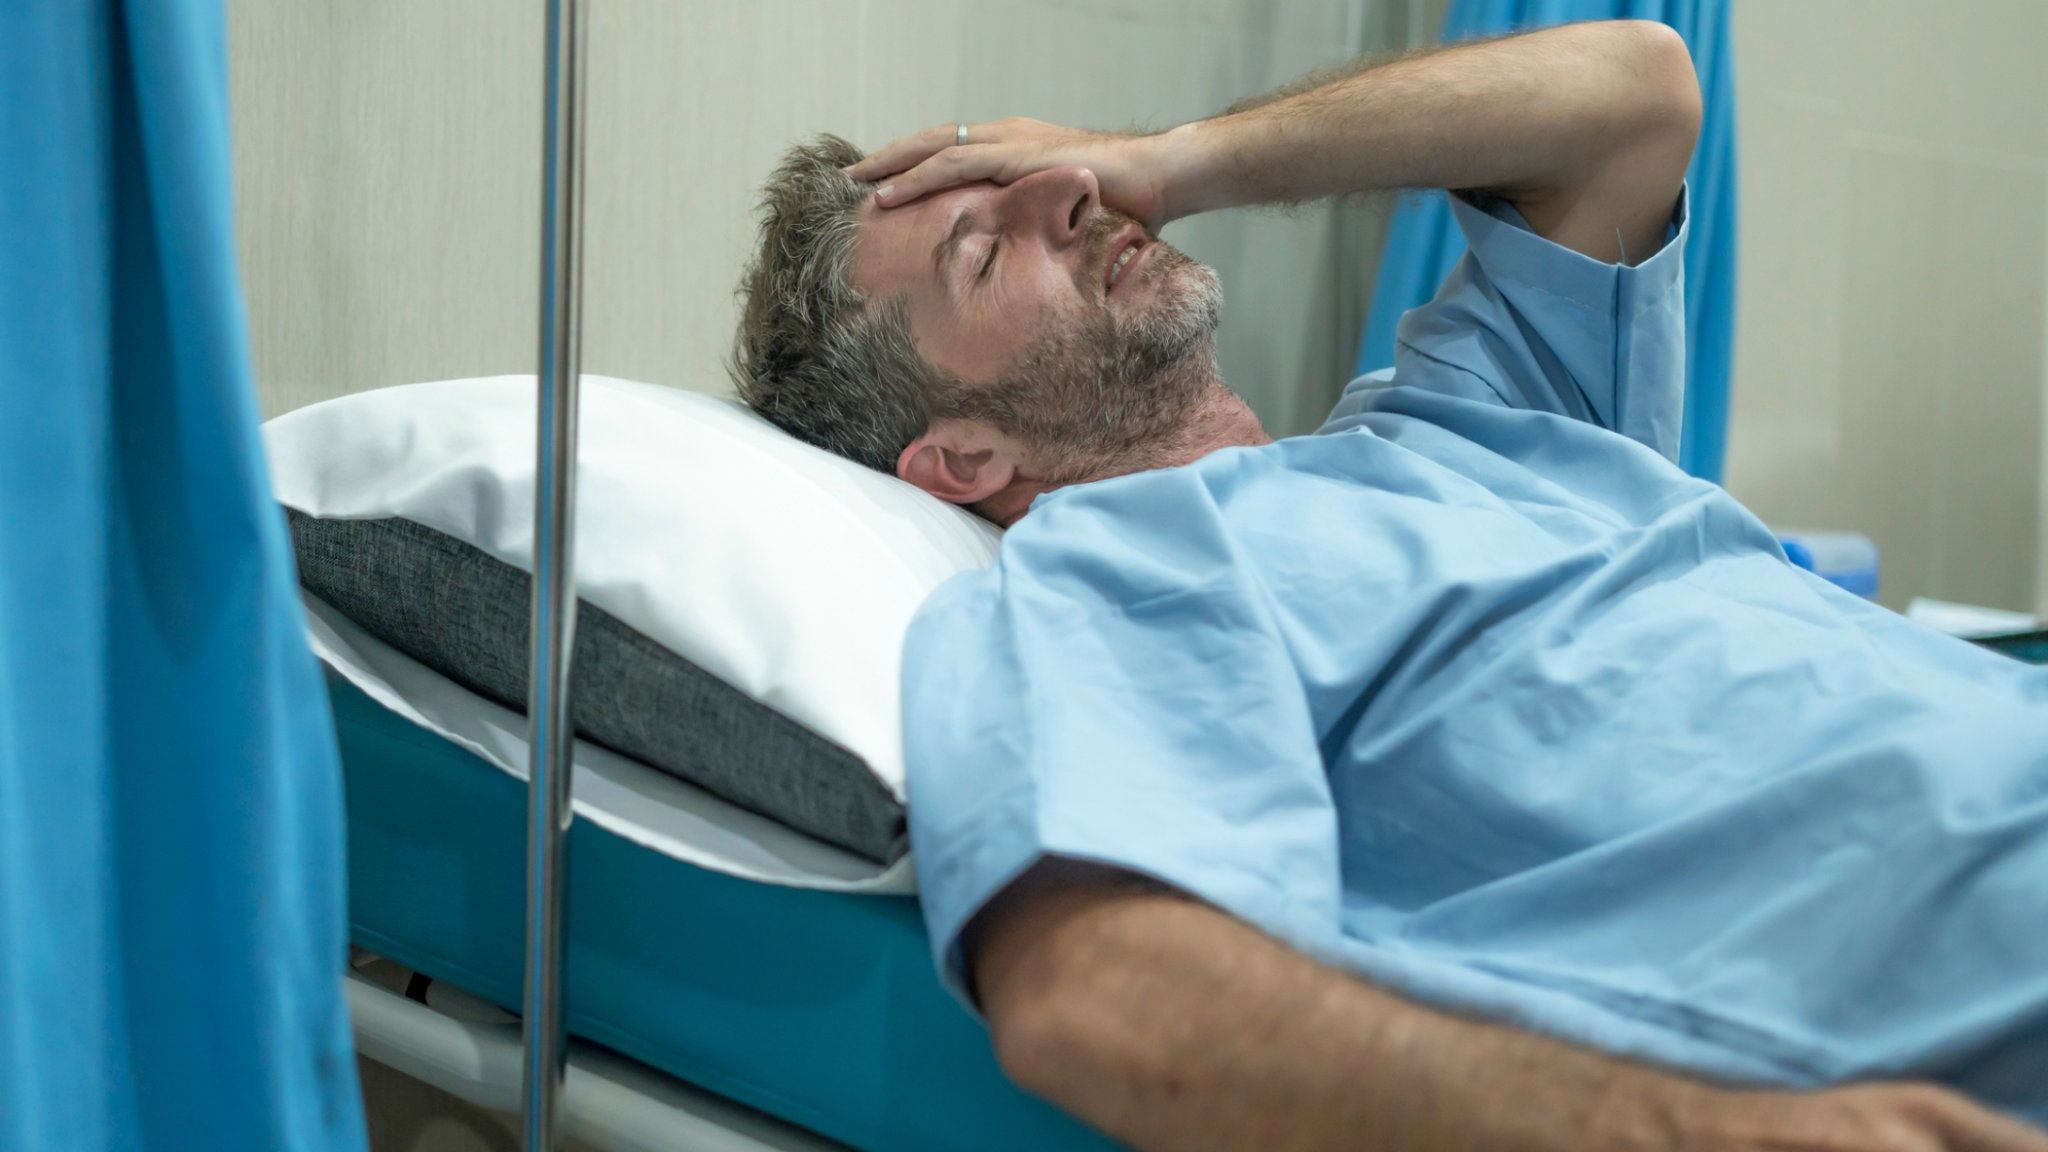 Real-Life Horror Story: Dad of 3 Gets the 'Shock' of His Life While Getting a Vasectomy